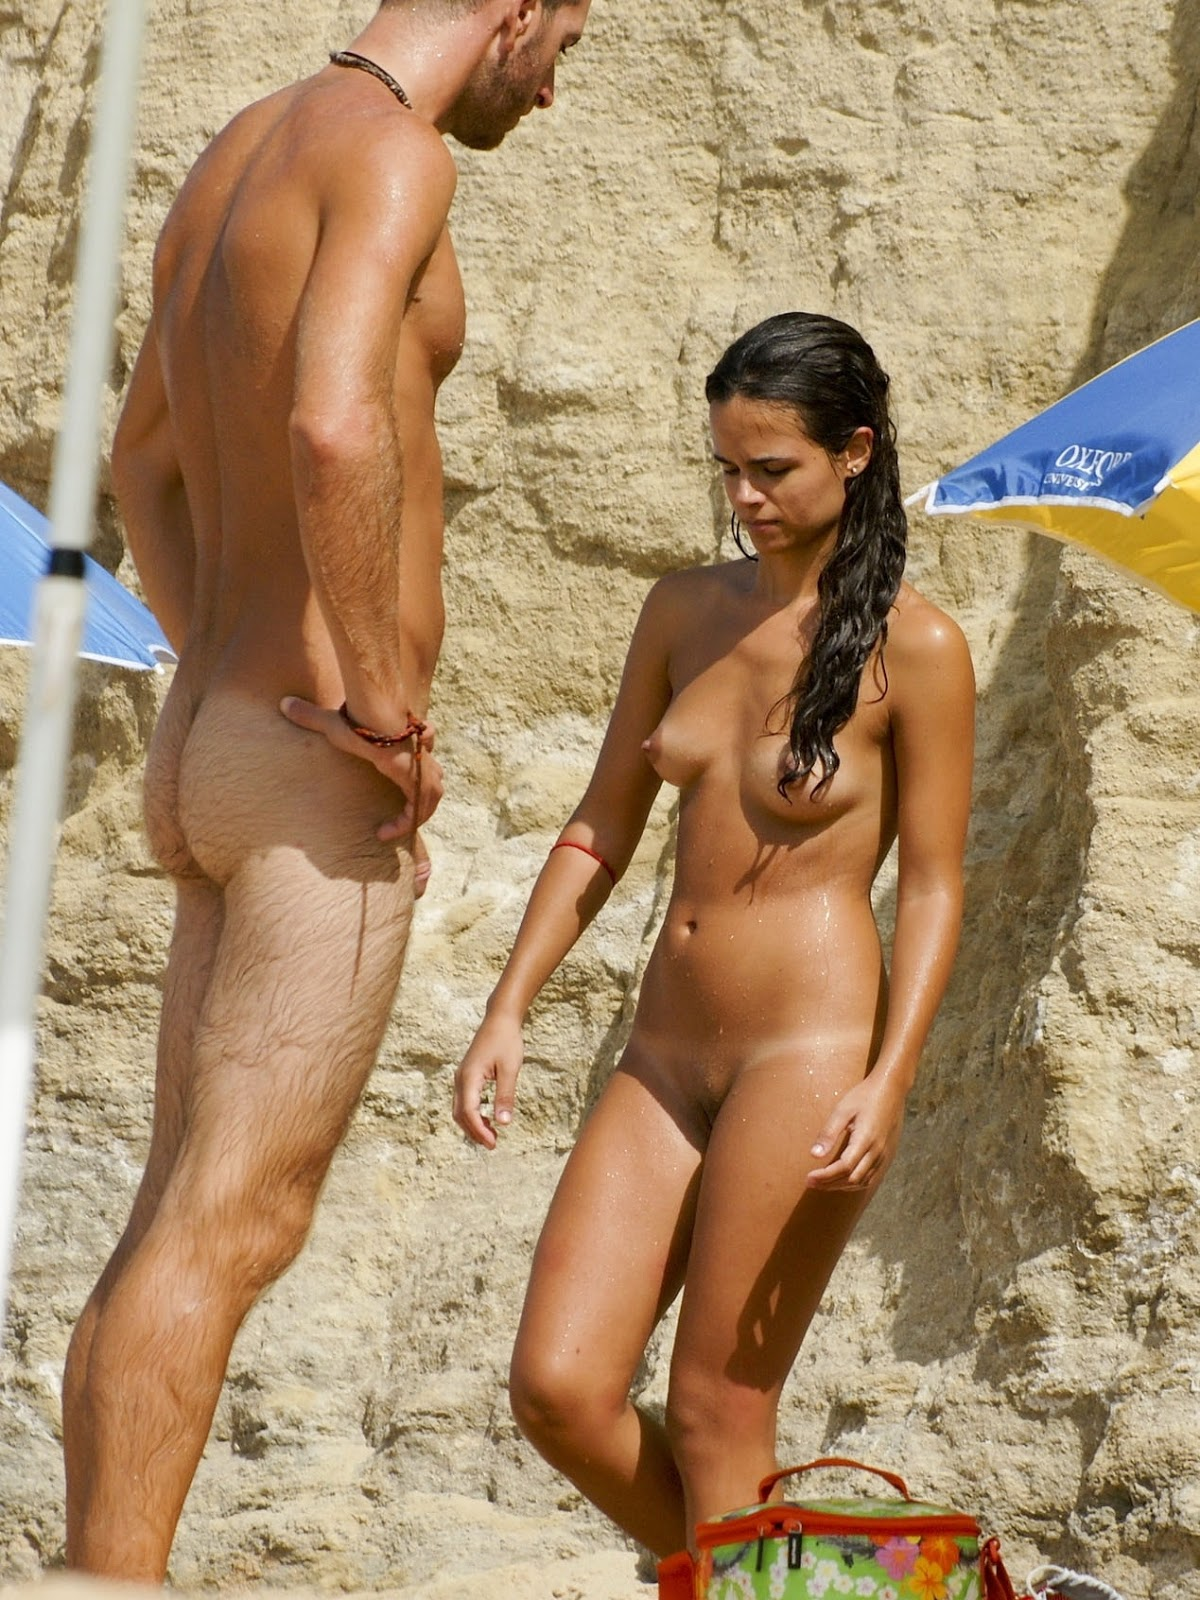 Nudism - Photo - Hq  Nudists - Couple - Nude Beach-9941